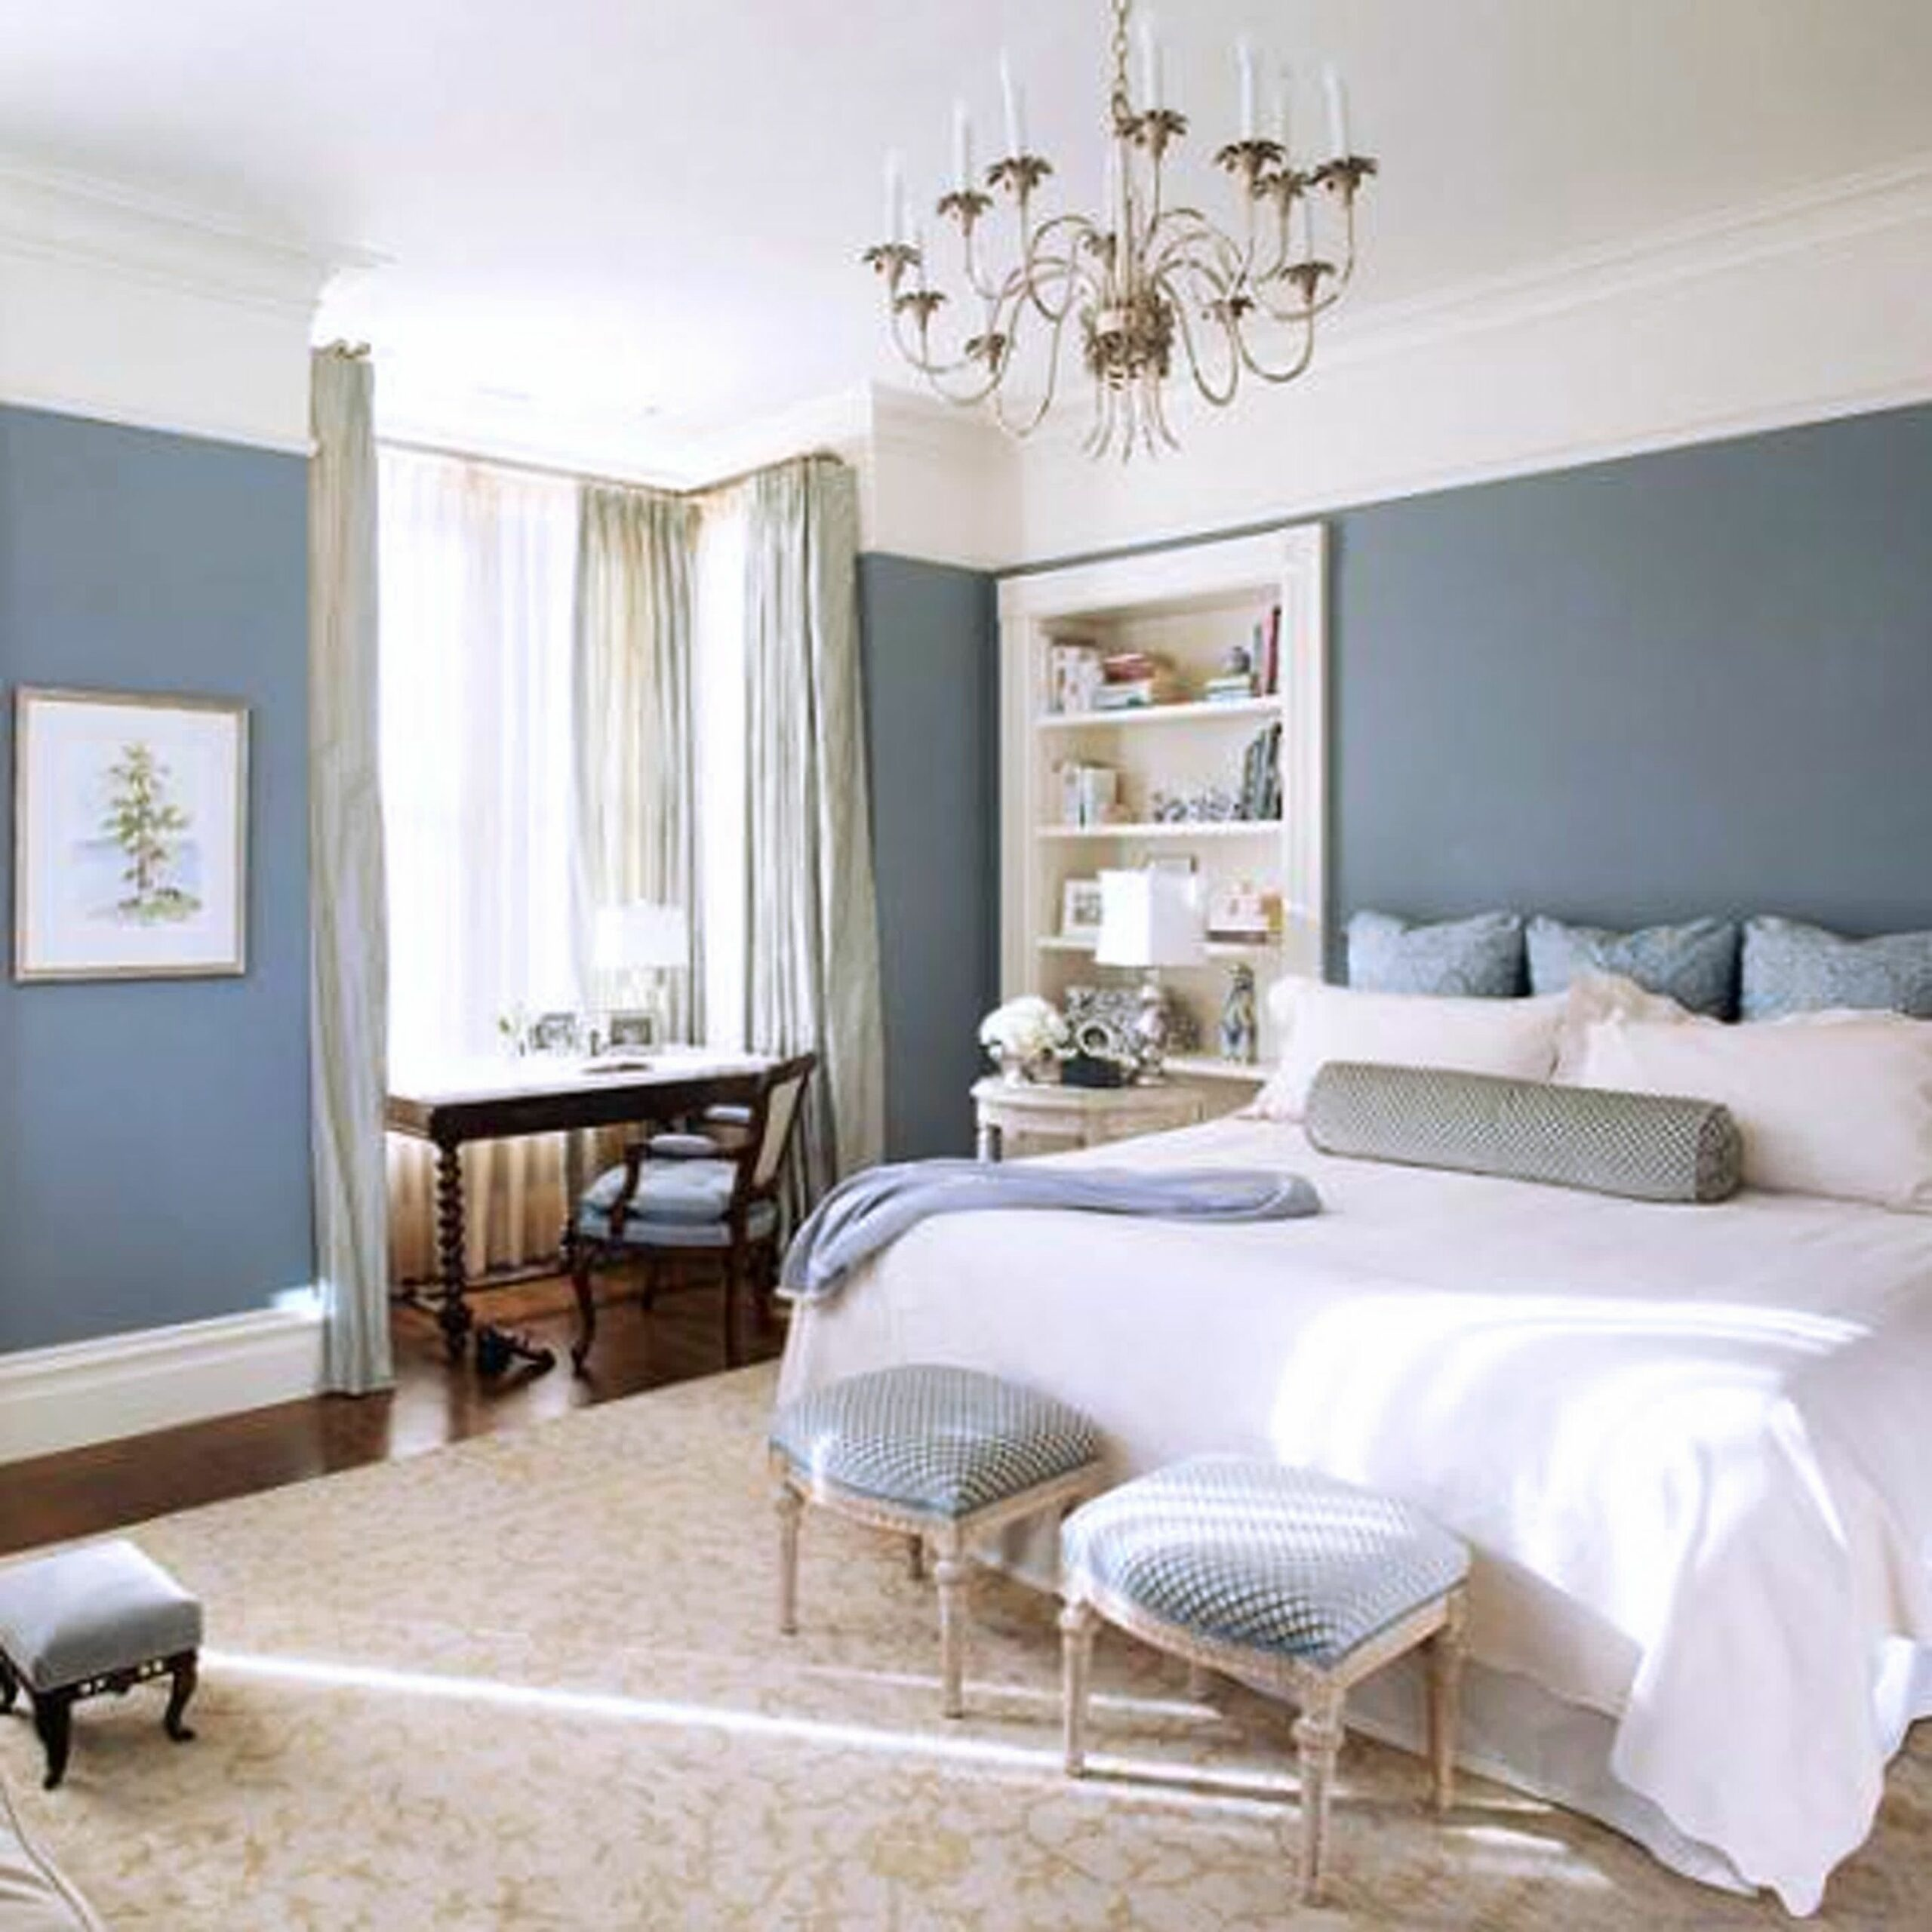 Bedroom Ideas Blue And Grey | Bedroom Decorating